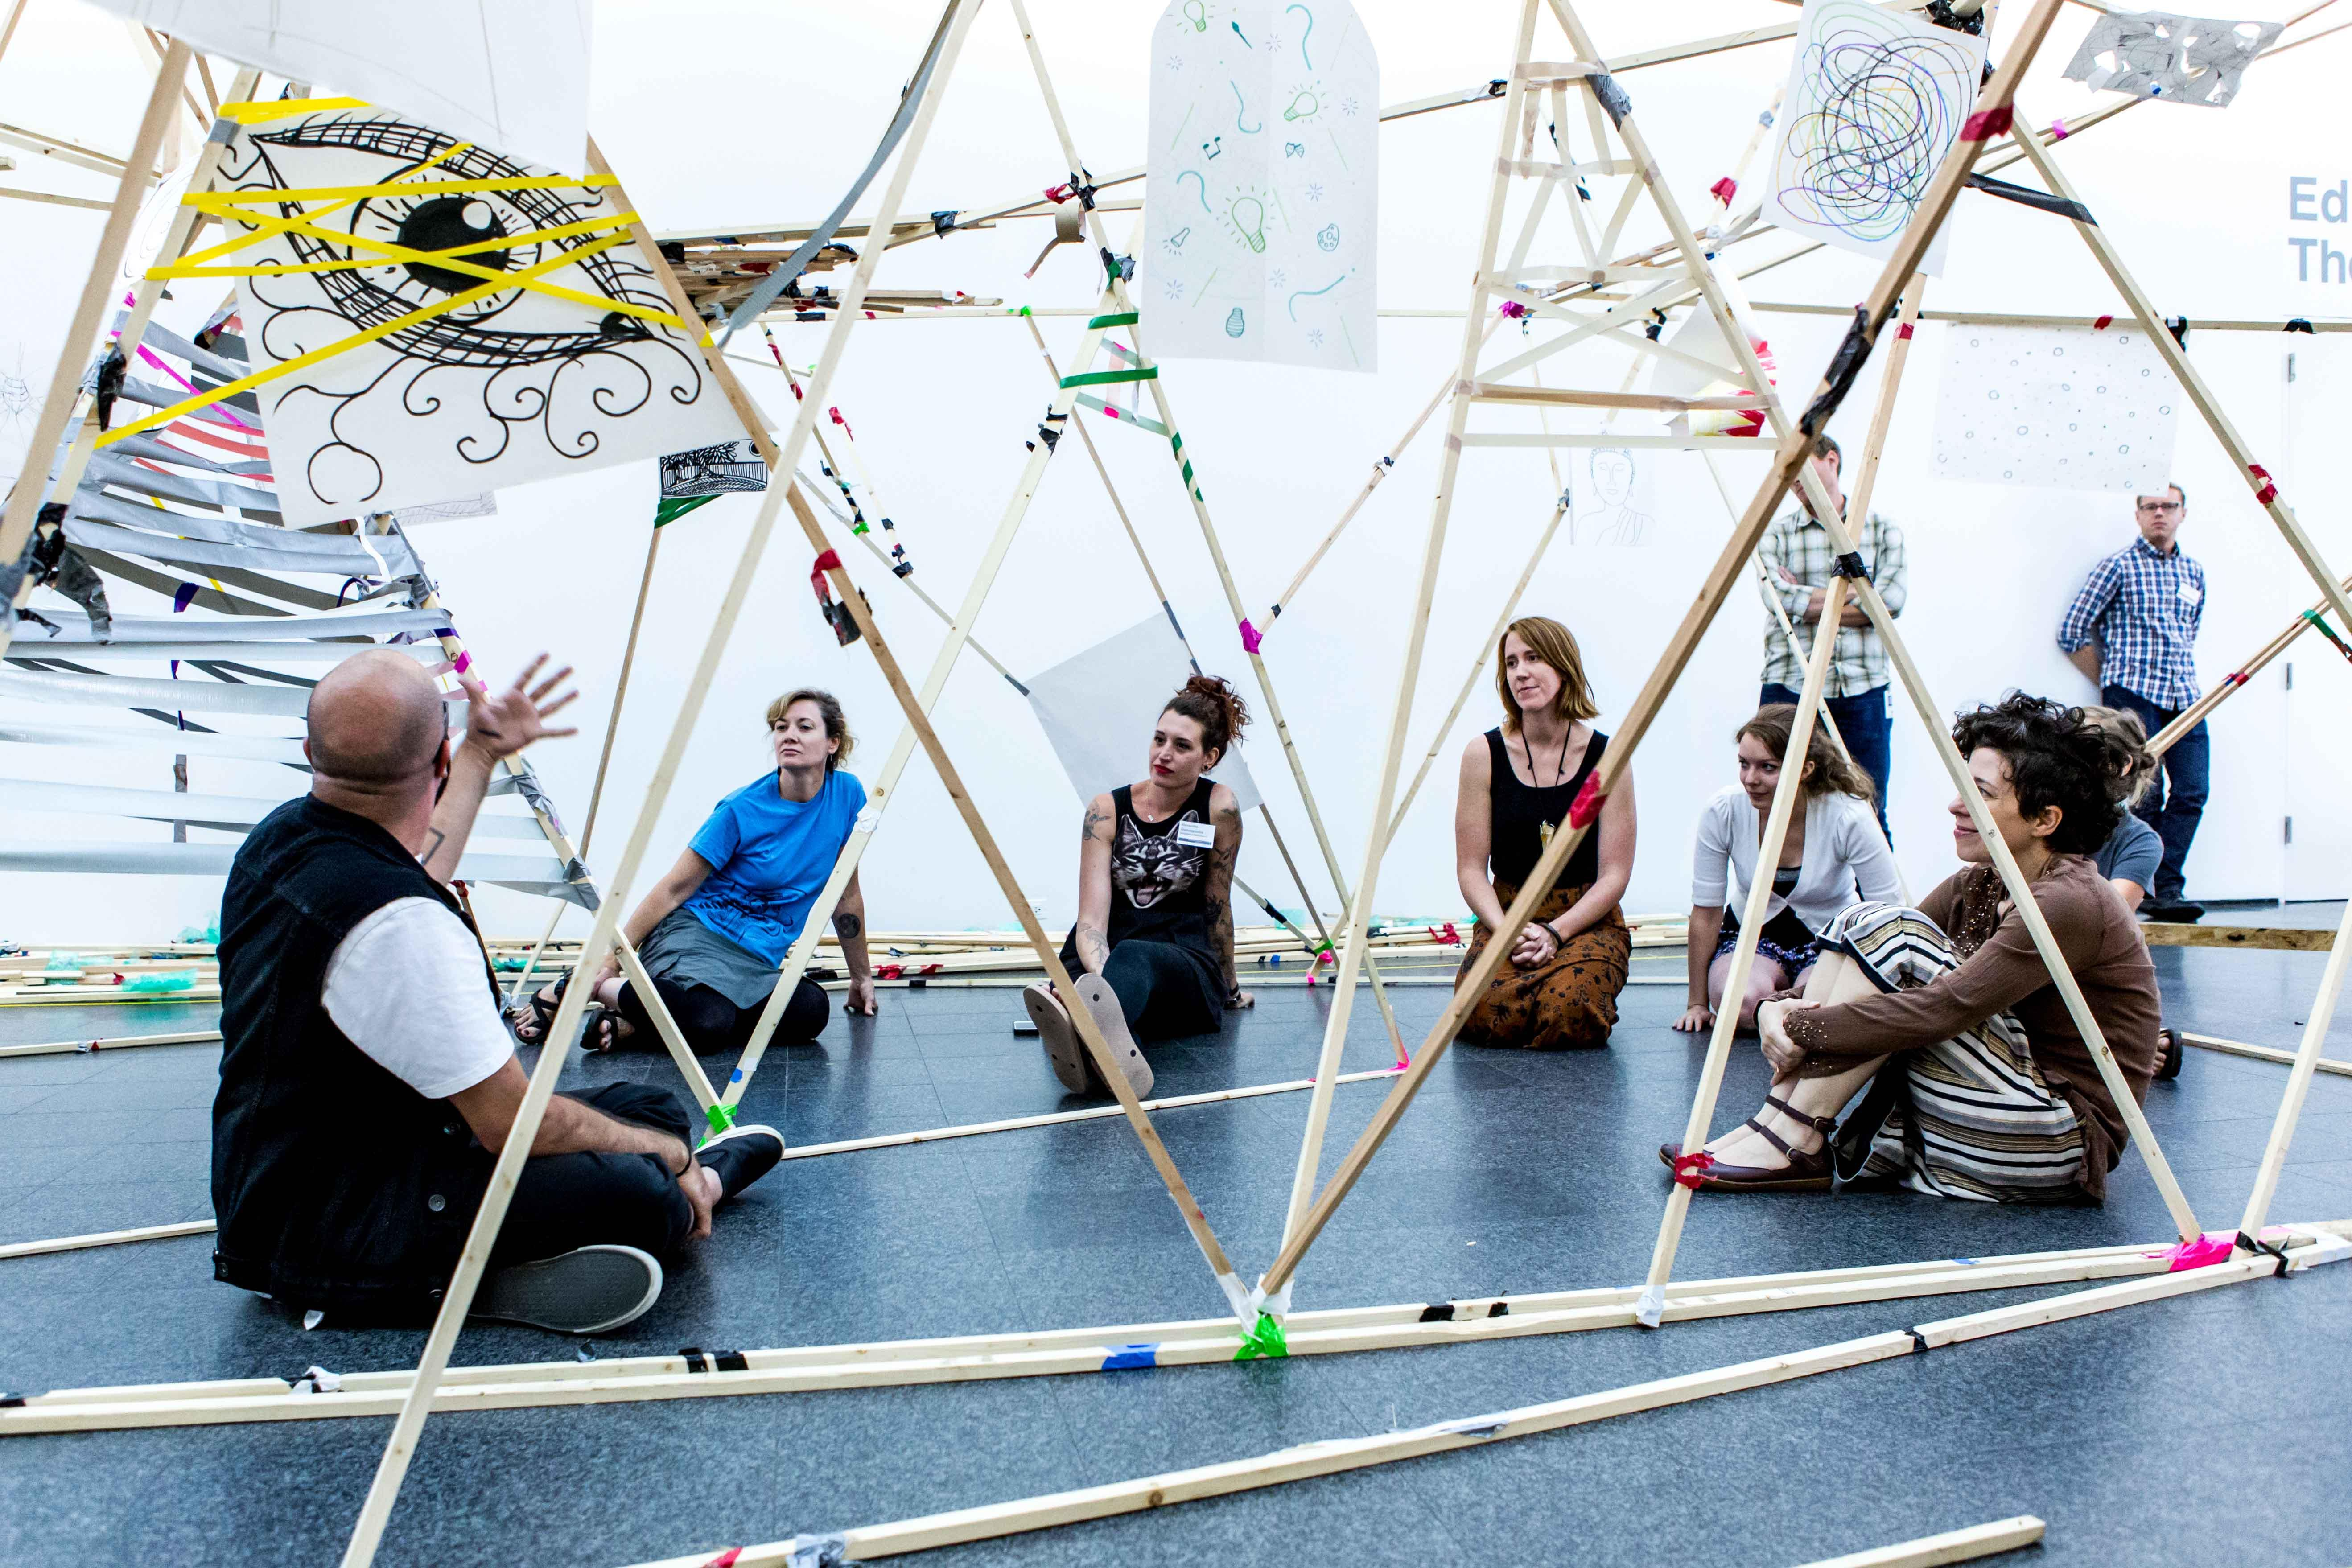 People sit on the ground in an open-air structure made of long wooden beams and tape